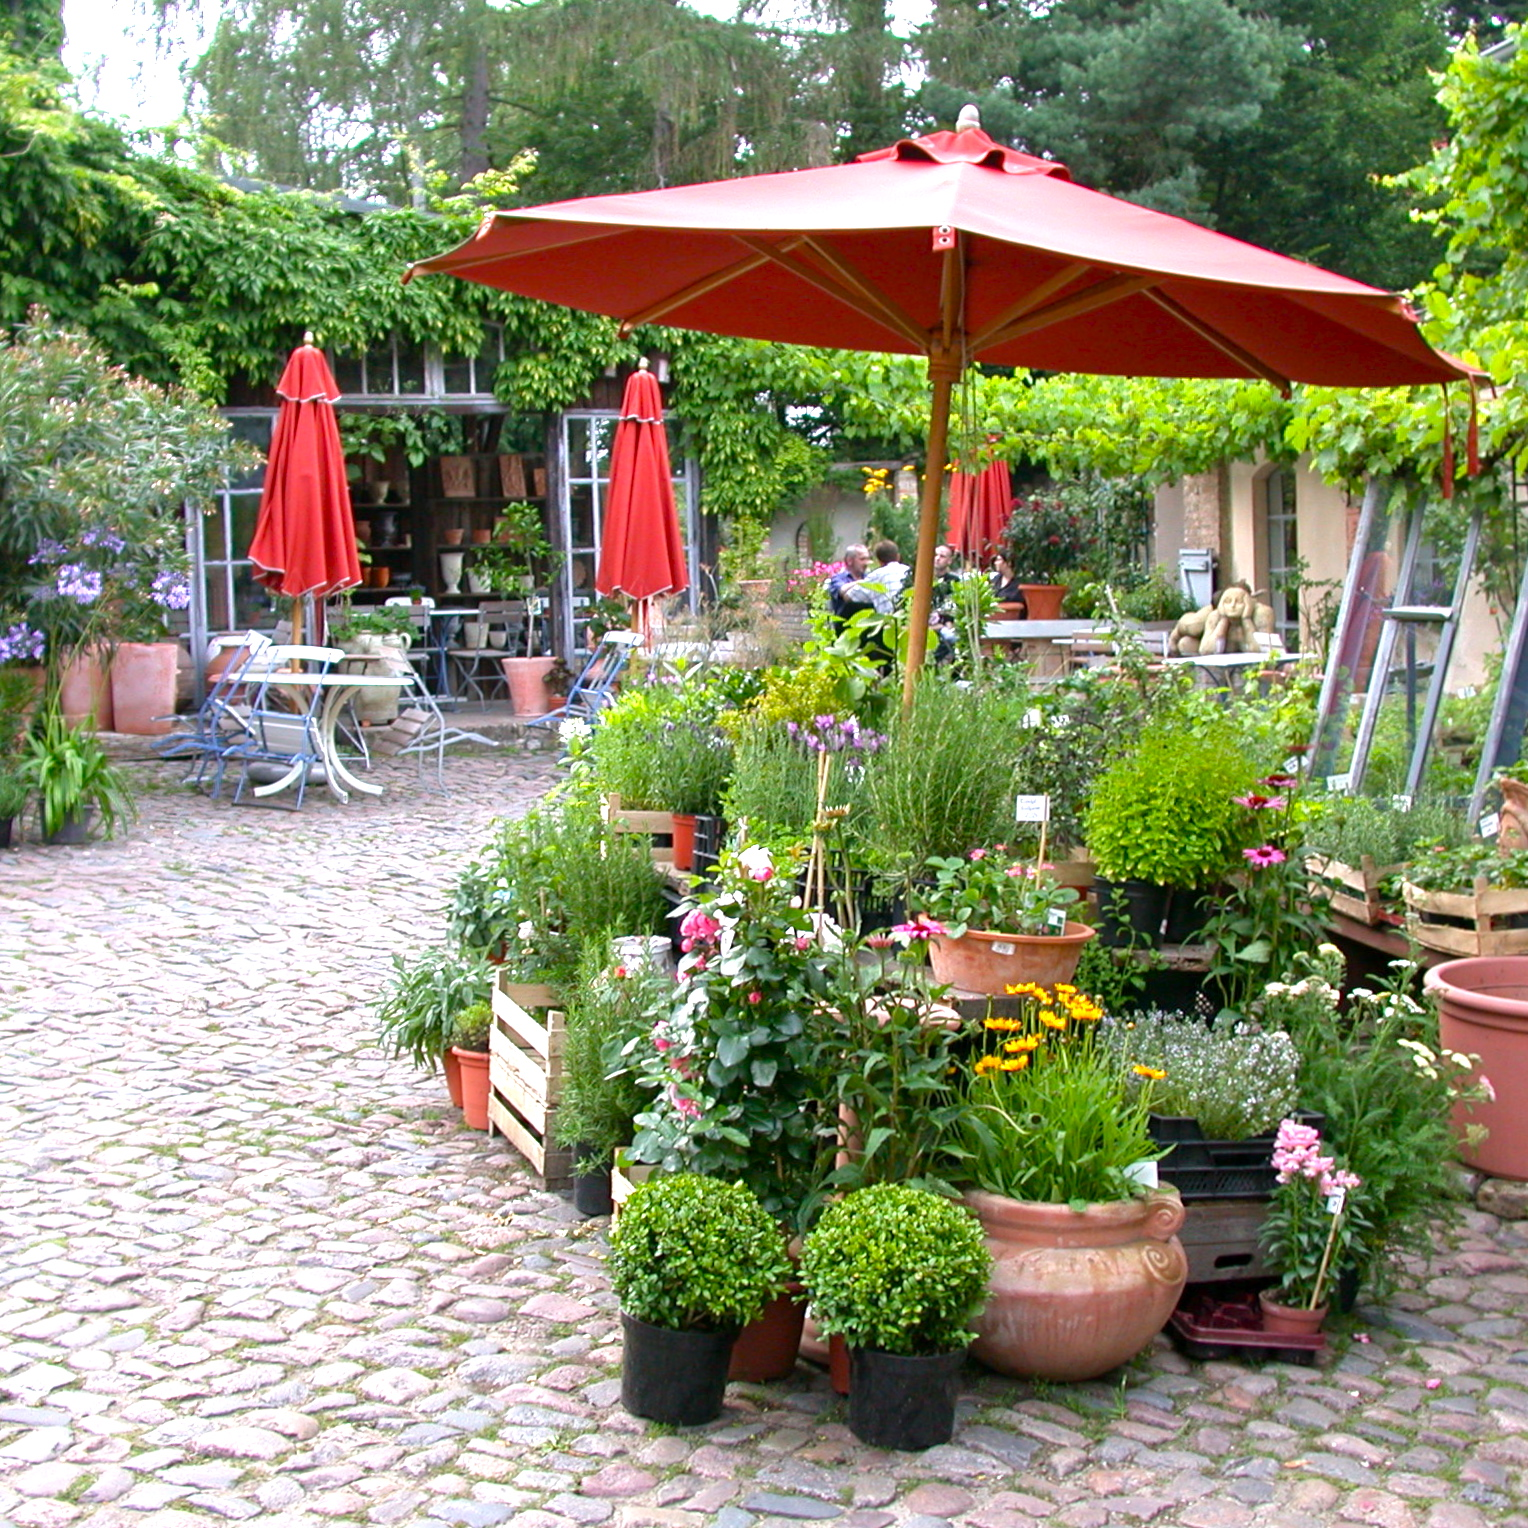 Hofcafe-Mutter-Fourage-Berlin-Wannsee-Hof